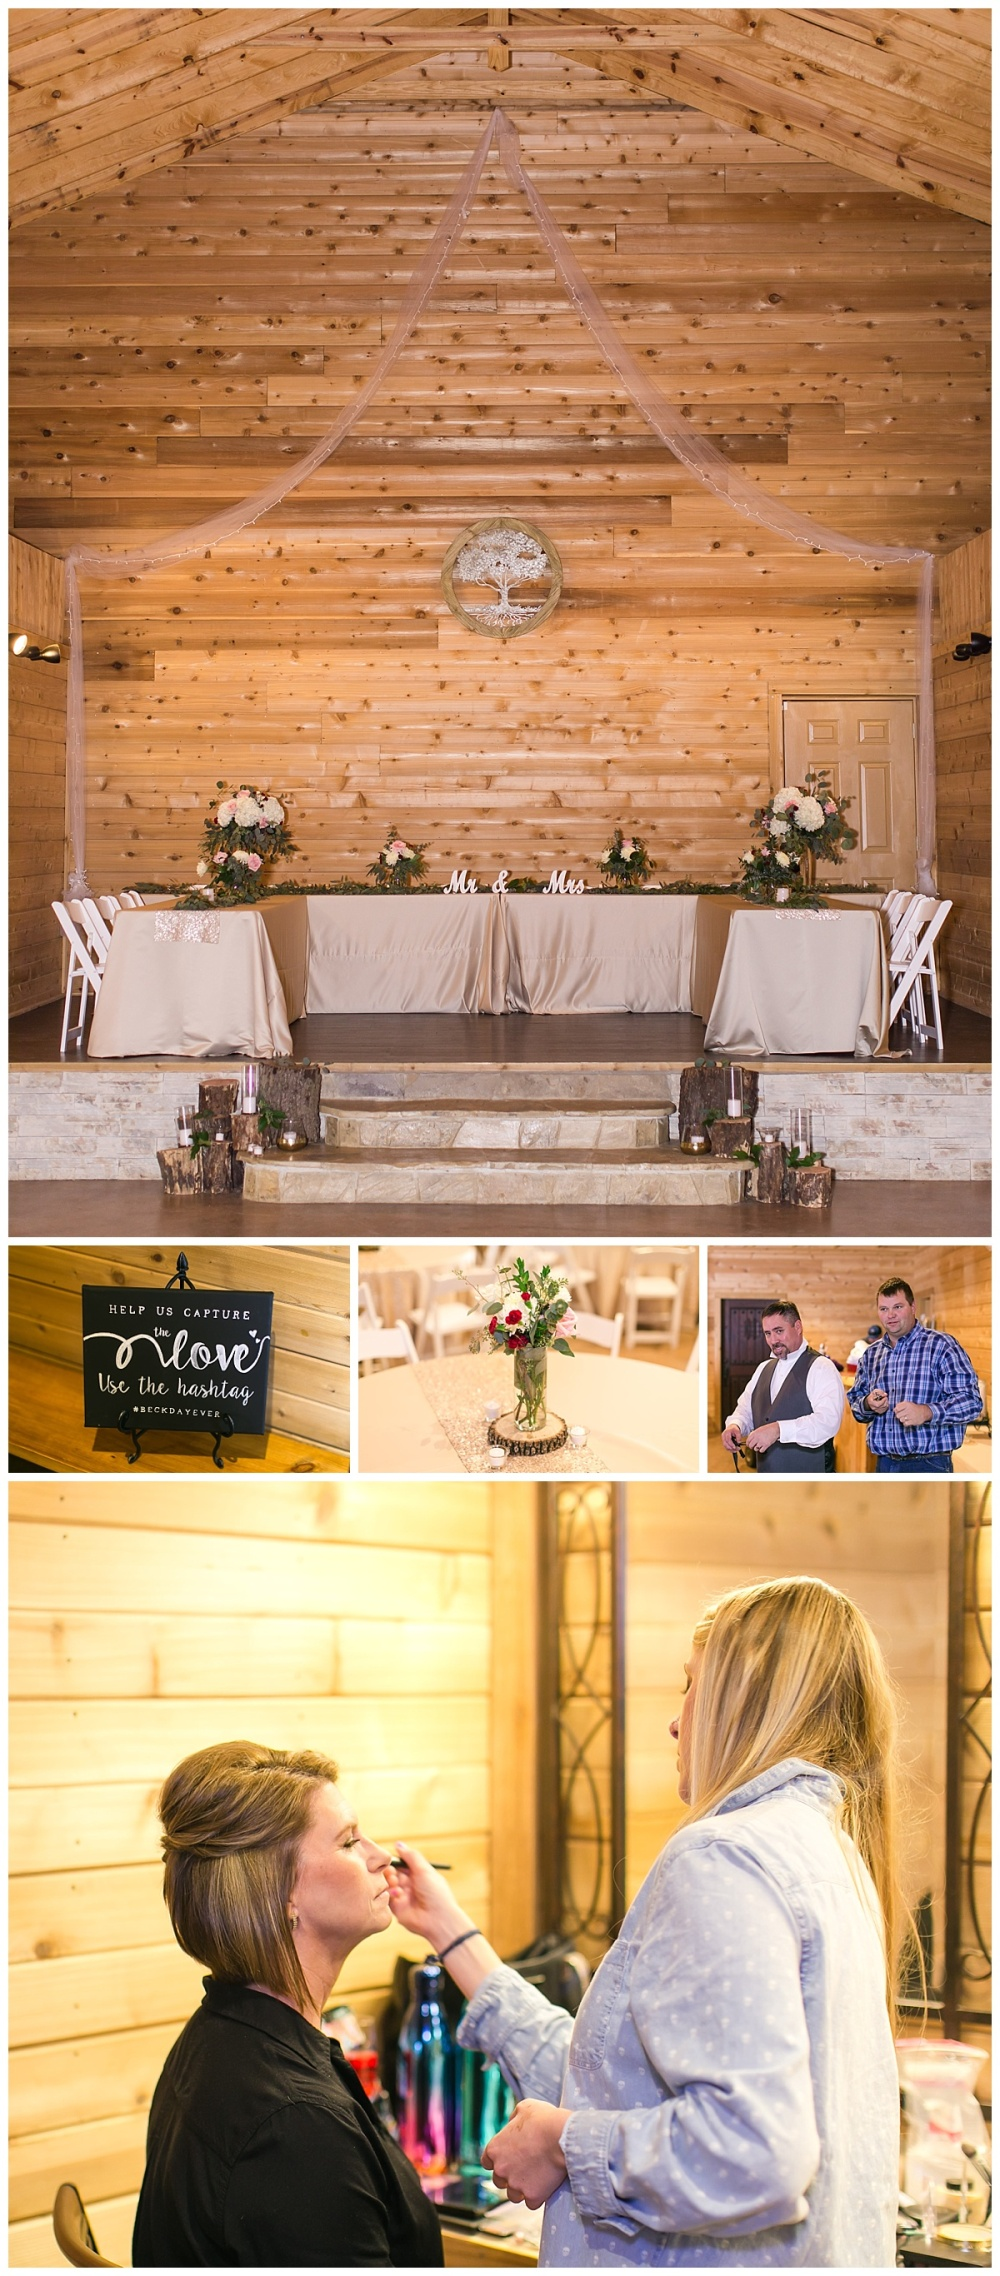 Carly-Barton-Photography-Geronimo-Oaks-Wedding-Venue-Texas-Hill-Country-Ronnie-Sarah_0086.jpg